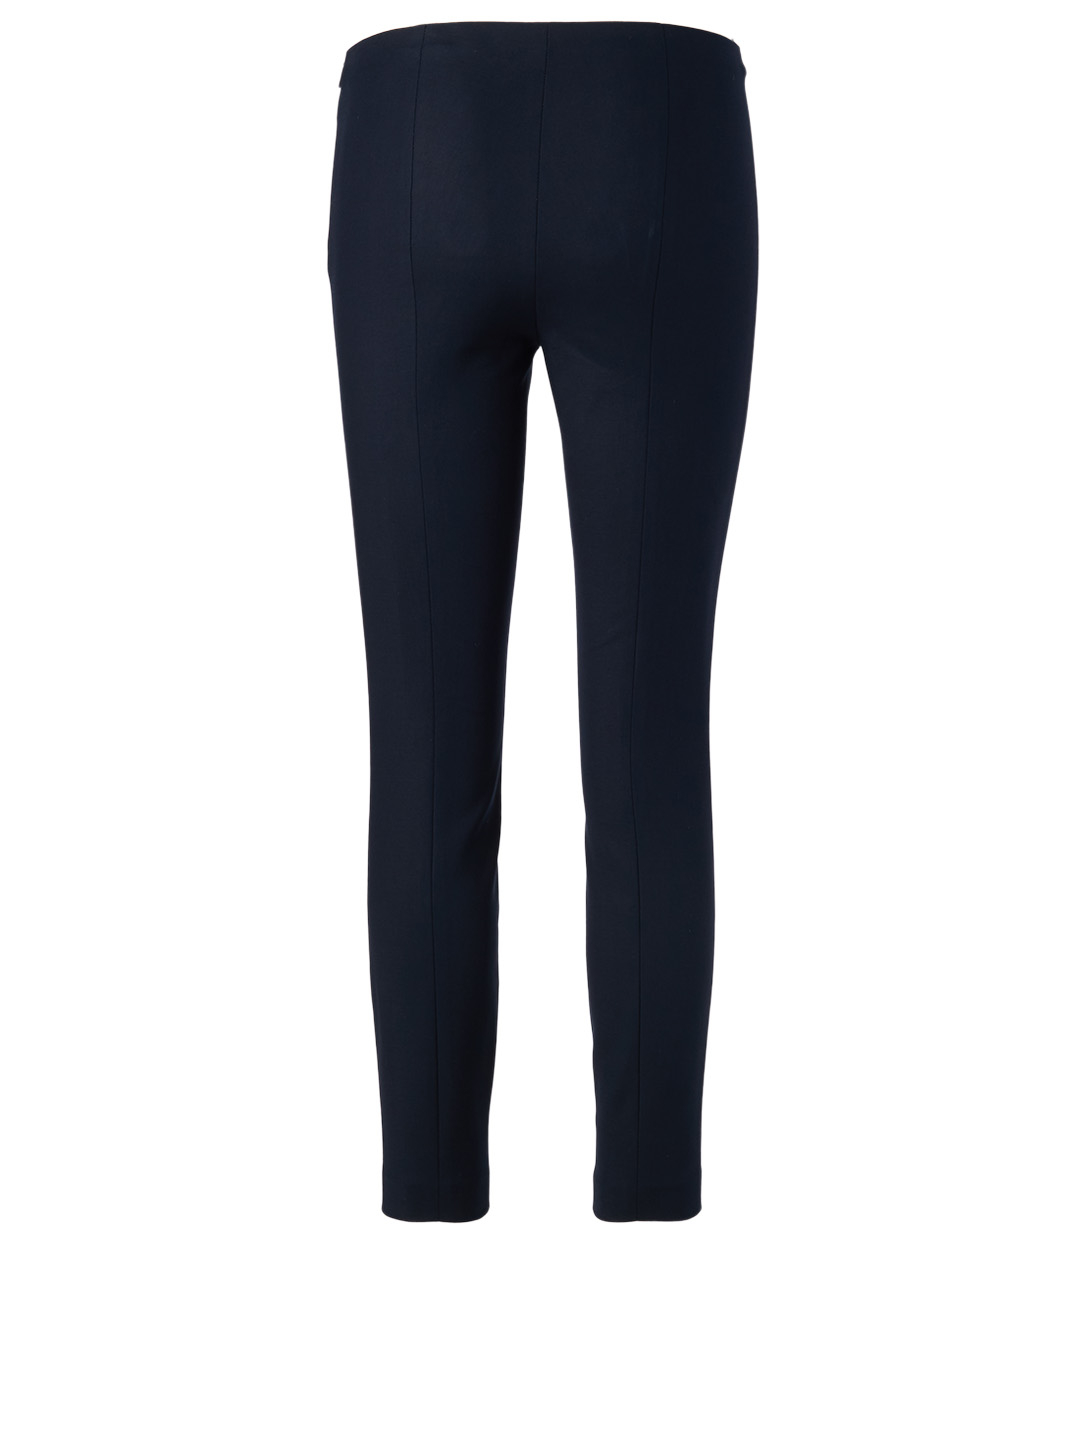 THE ROW Pantalon Sorocco en coton Femmes Bleu